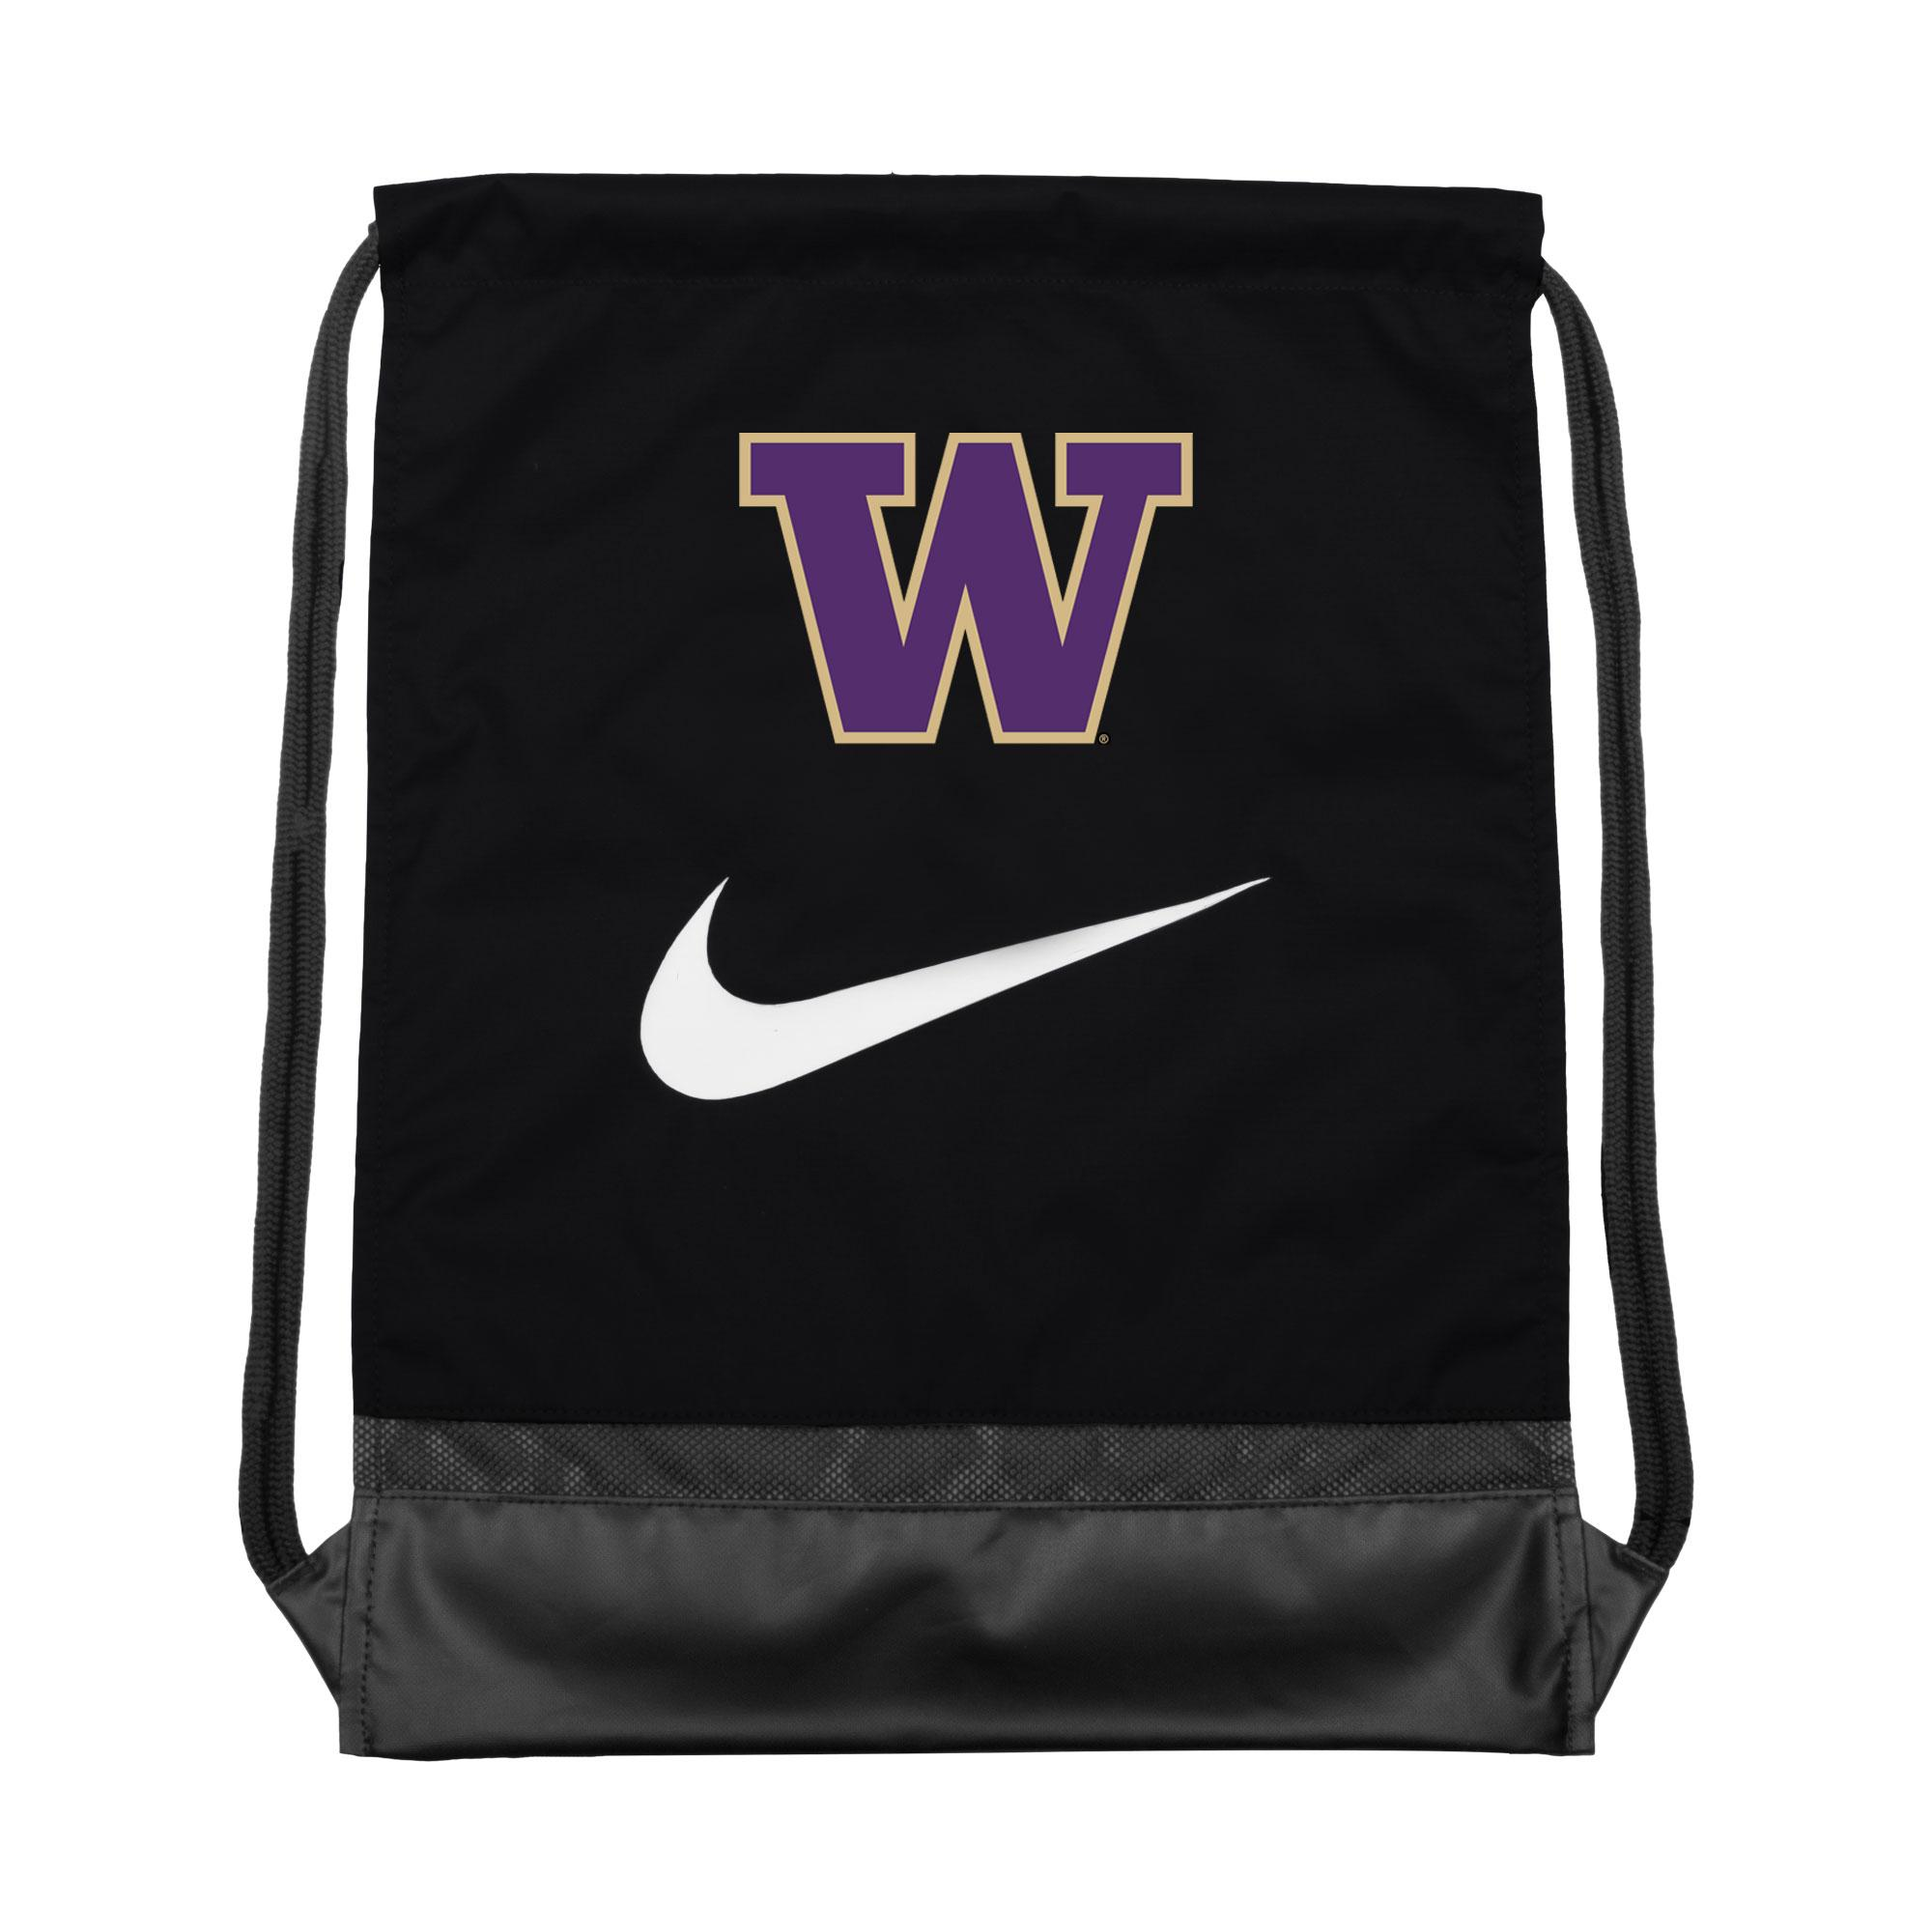 Nike Black W Washington Brasilia Gym Bag 50884d173d21b